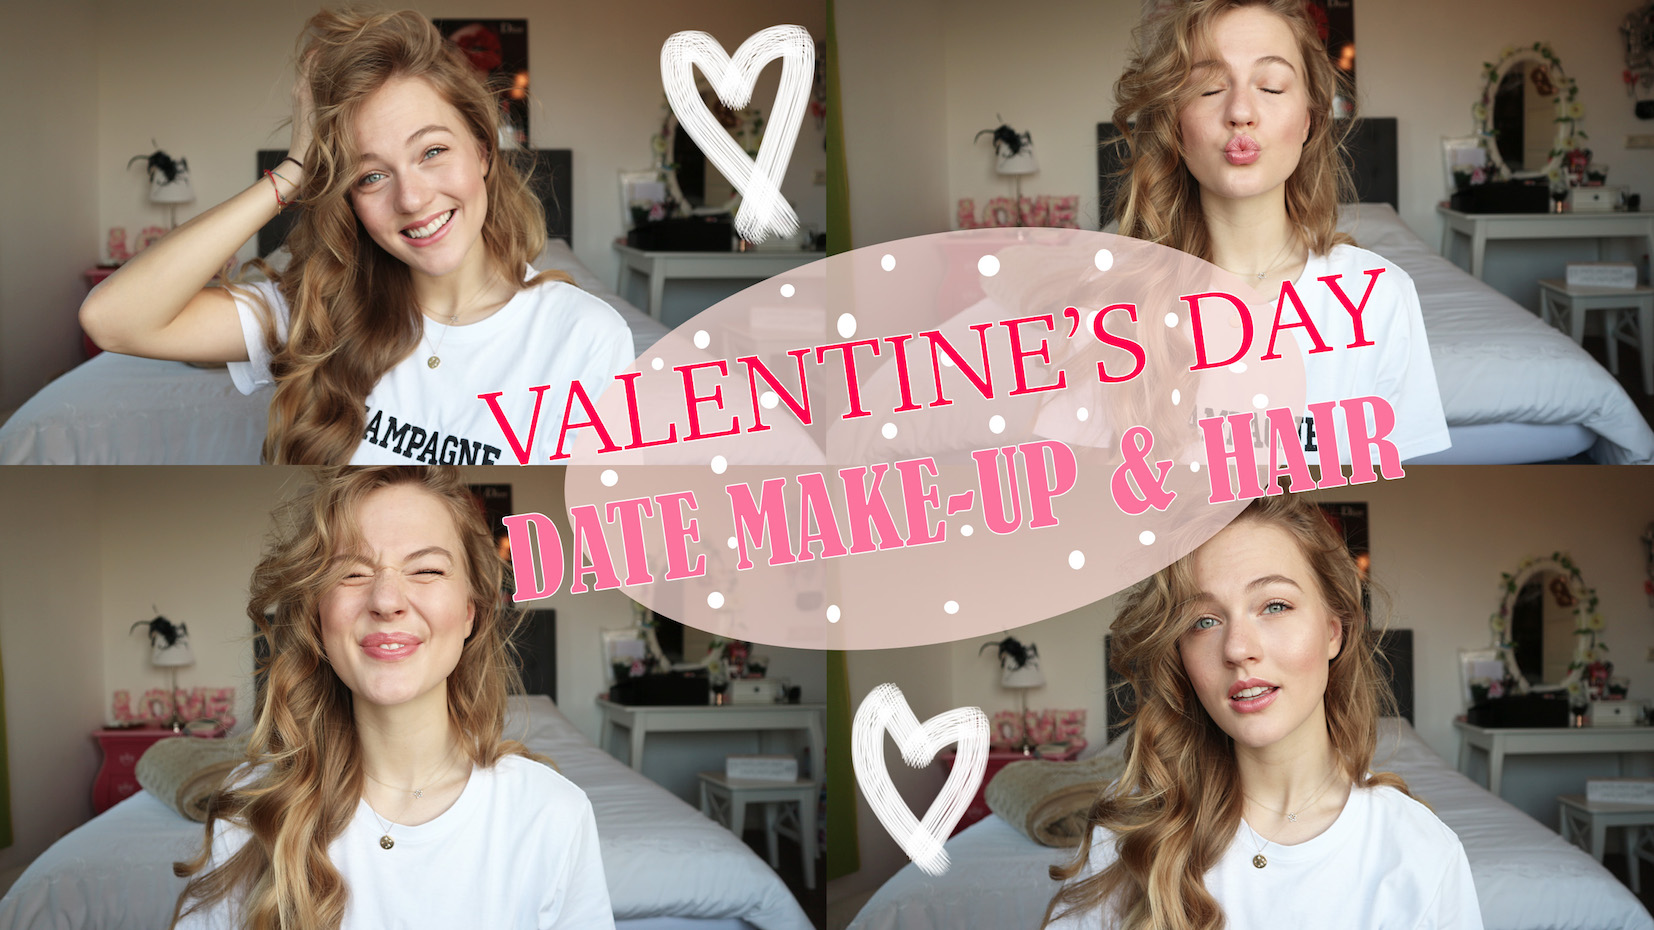 VALENTINE'S DAY DATE MAKE-UP & HAIR